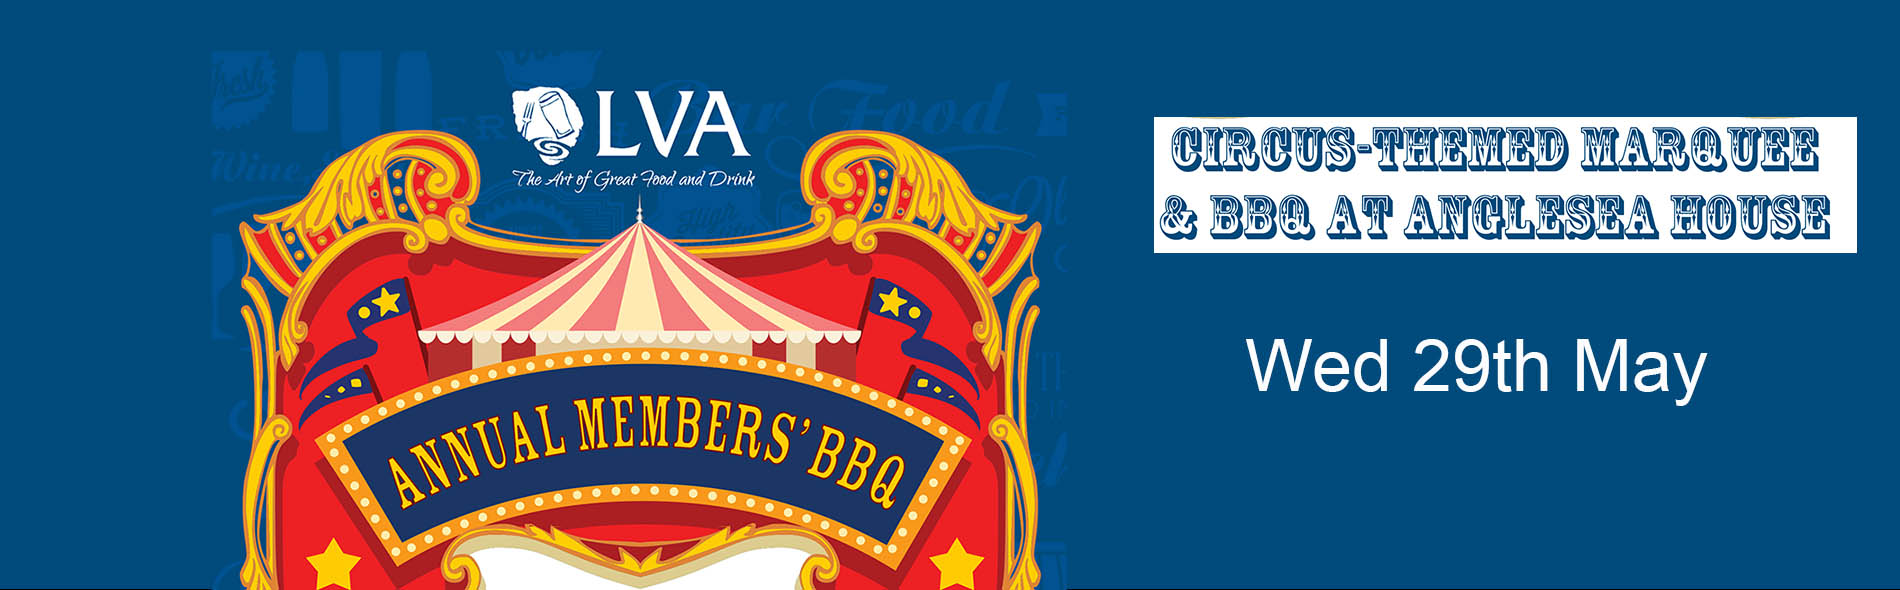 LVA Members BBQ 2019 with a special circus theme